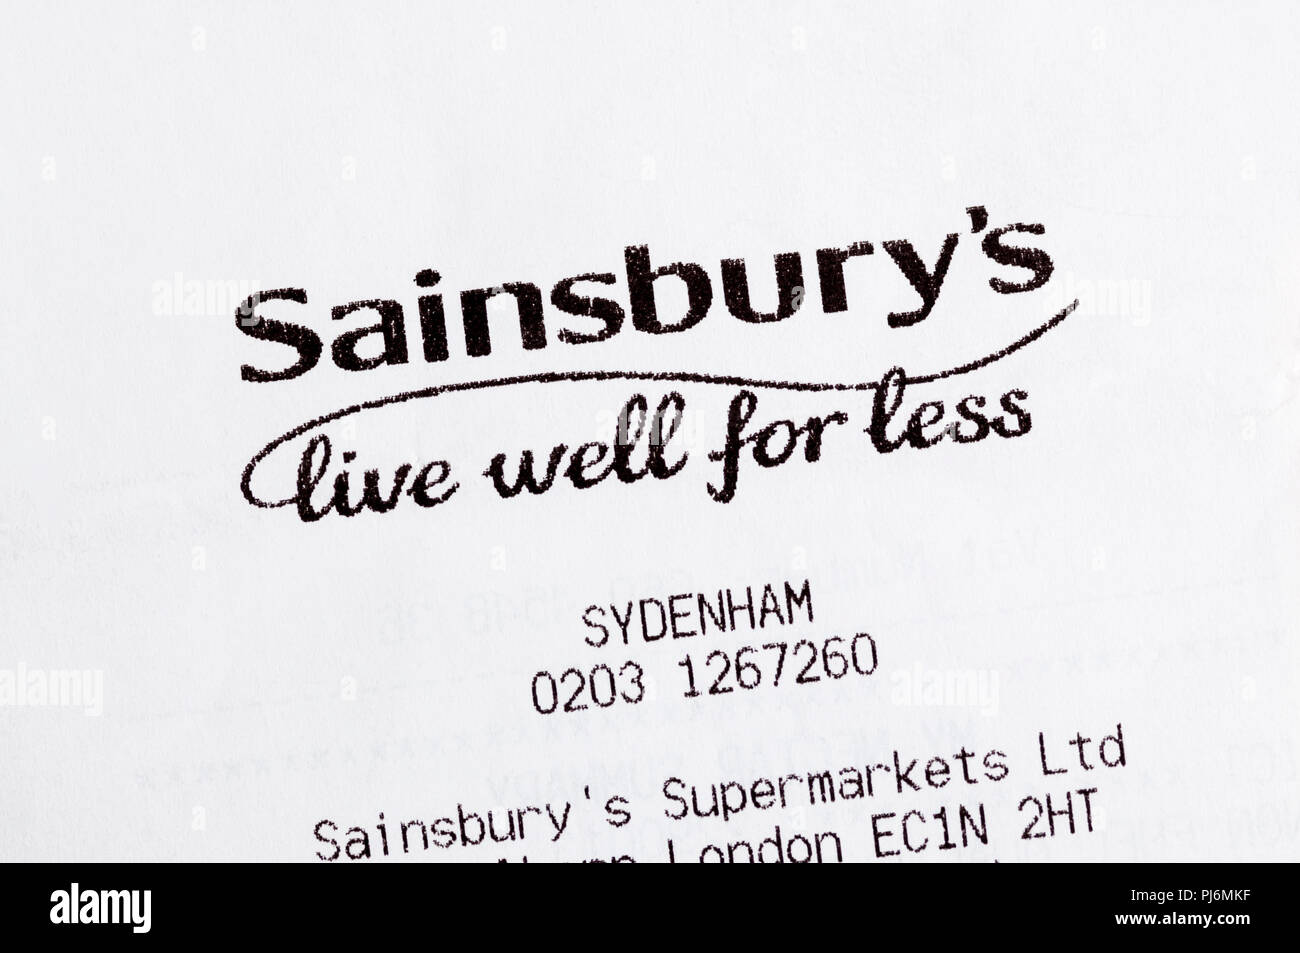 Close-up of Sainsbury's live well for less slogan printed on a till receipt. - Stock Image